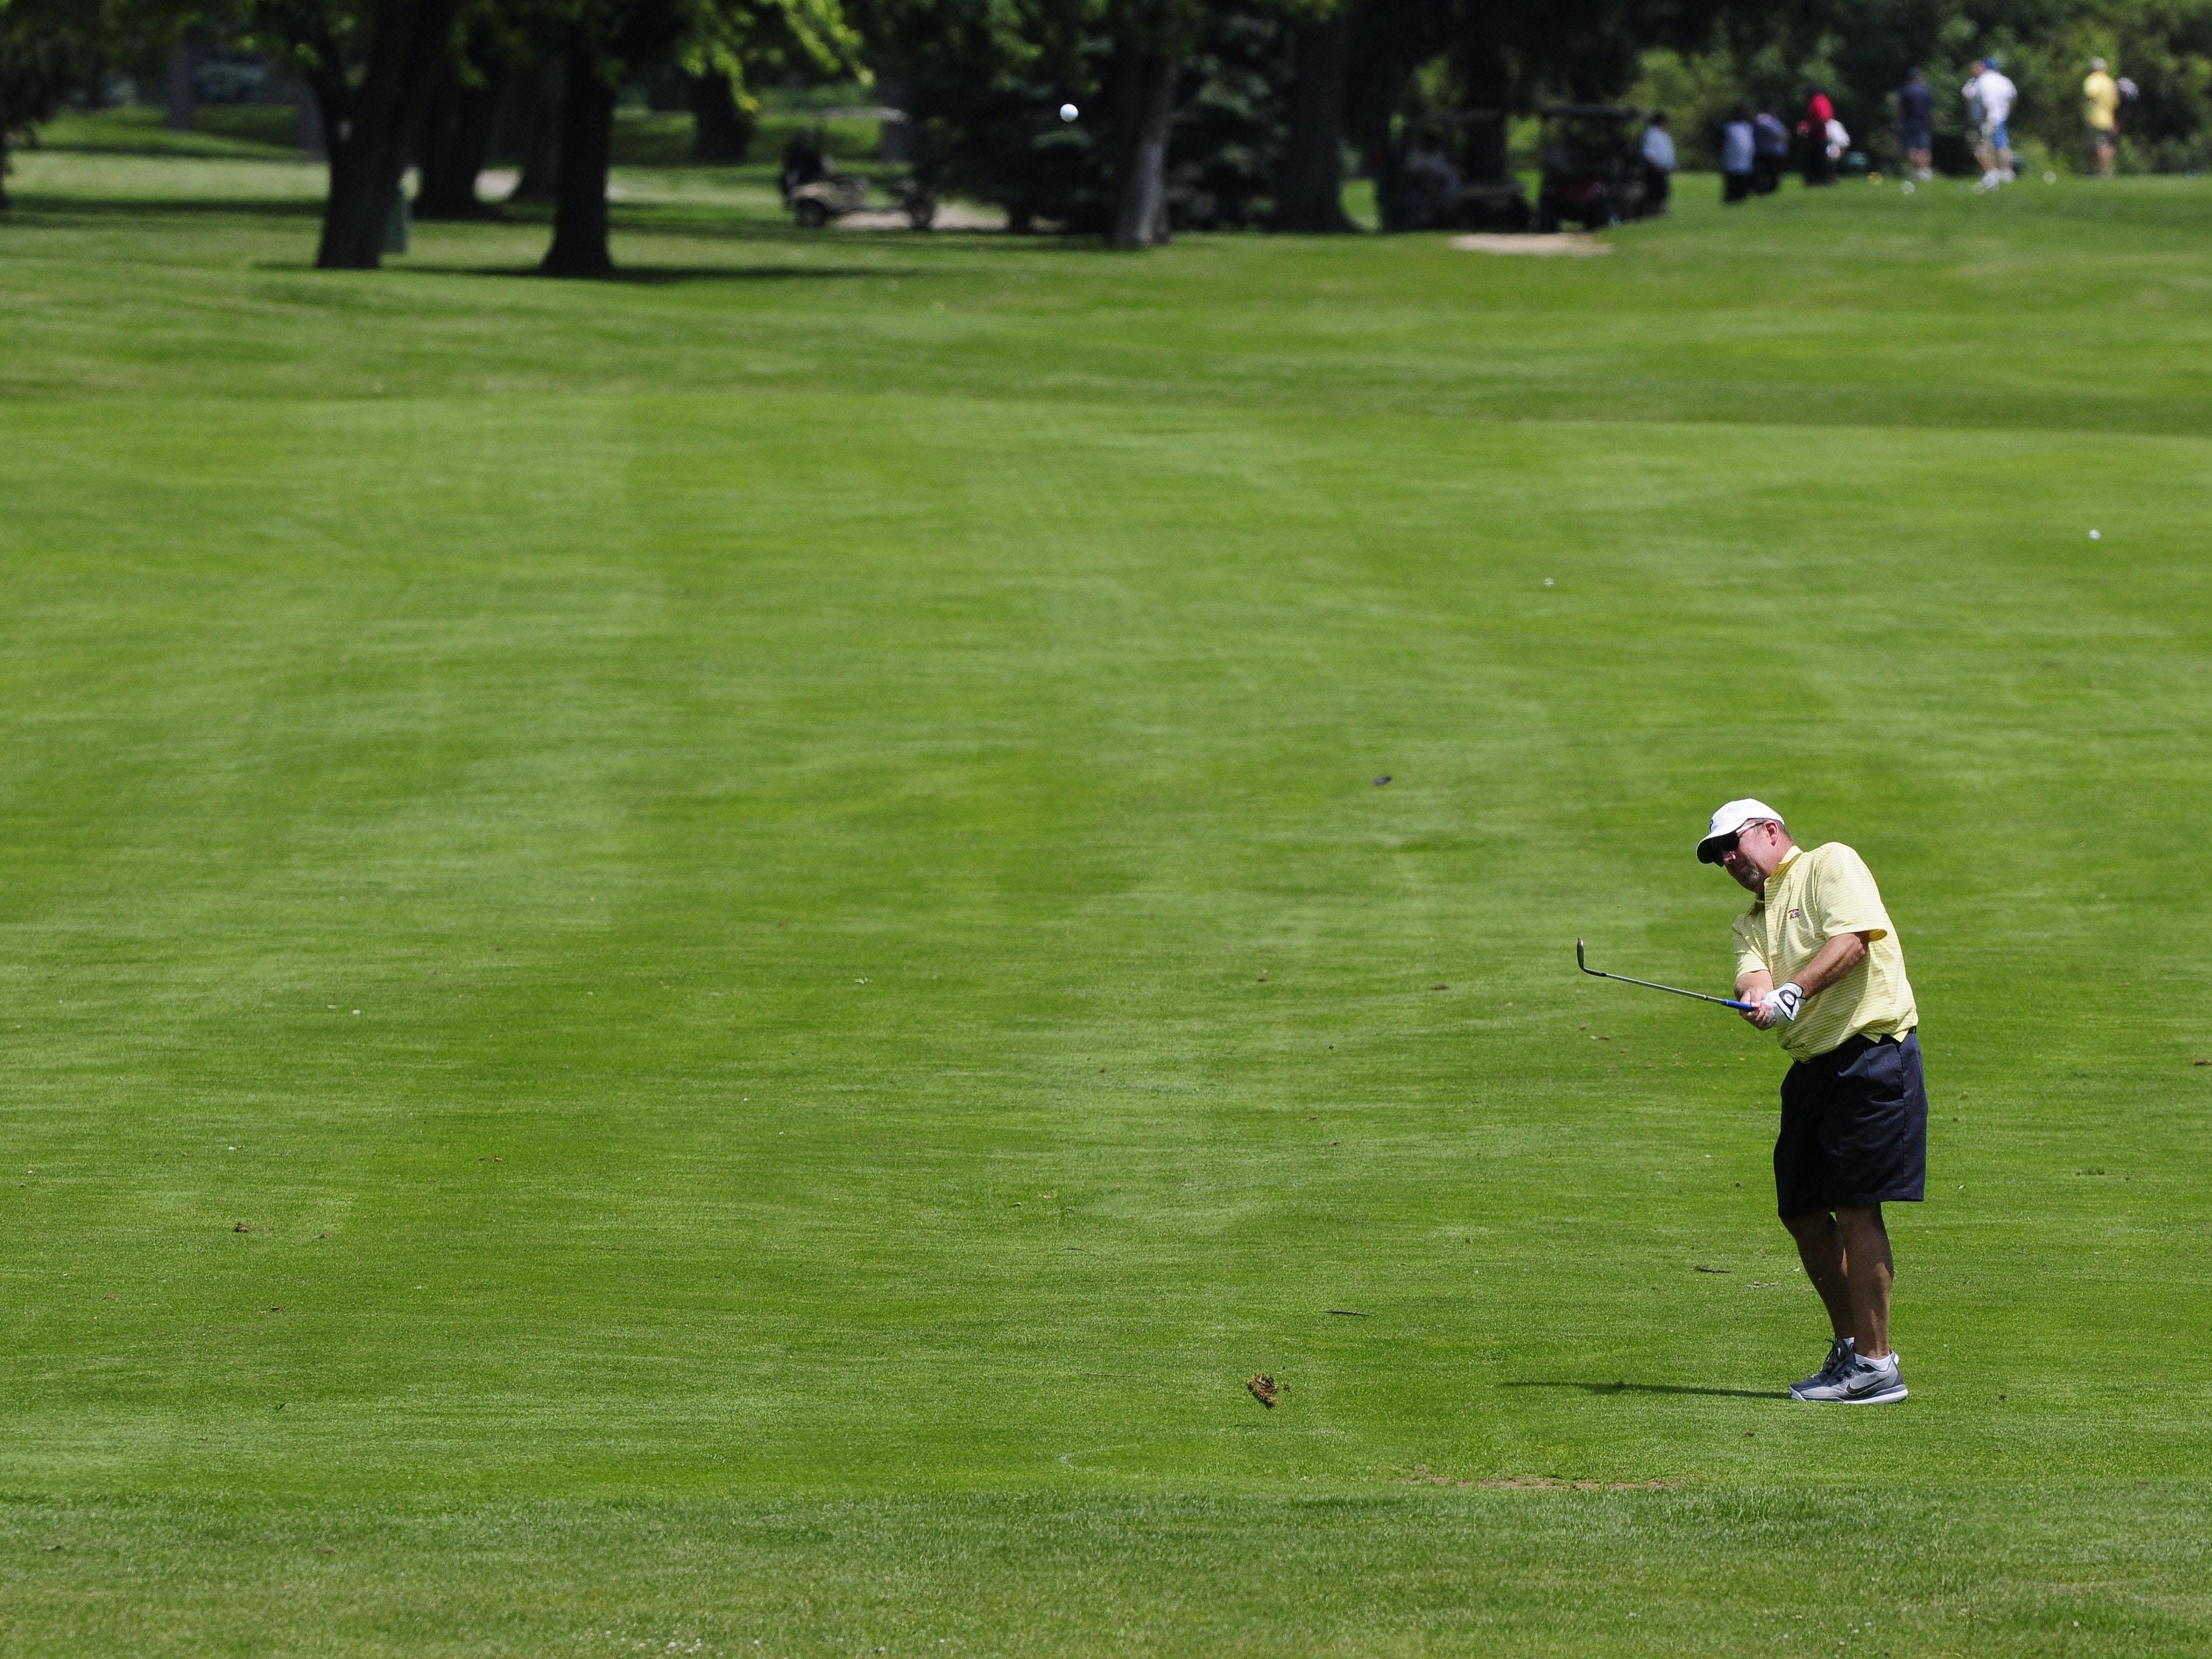 Markus Schulz hits the ball down the 18th fairway Friday, July 10 during the Port Huron Elks 2015 Men's Invitational in Port Huron Township.